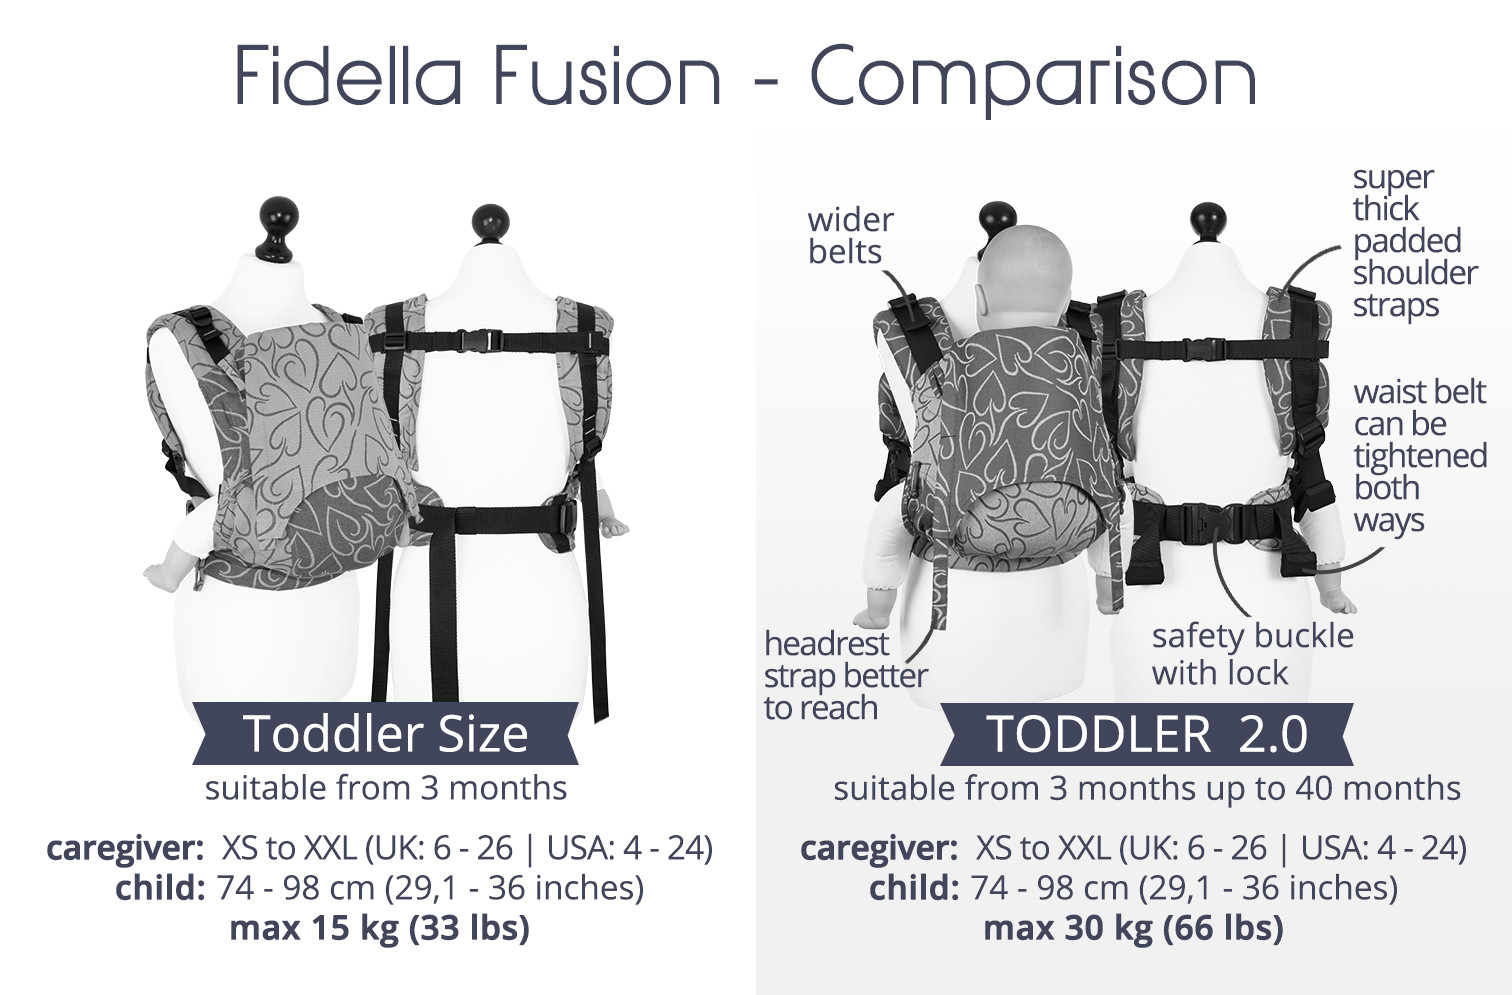 The differences between Fidella Baby carrier Fusion Toddler Size and Toddler 2.0